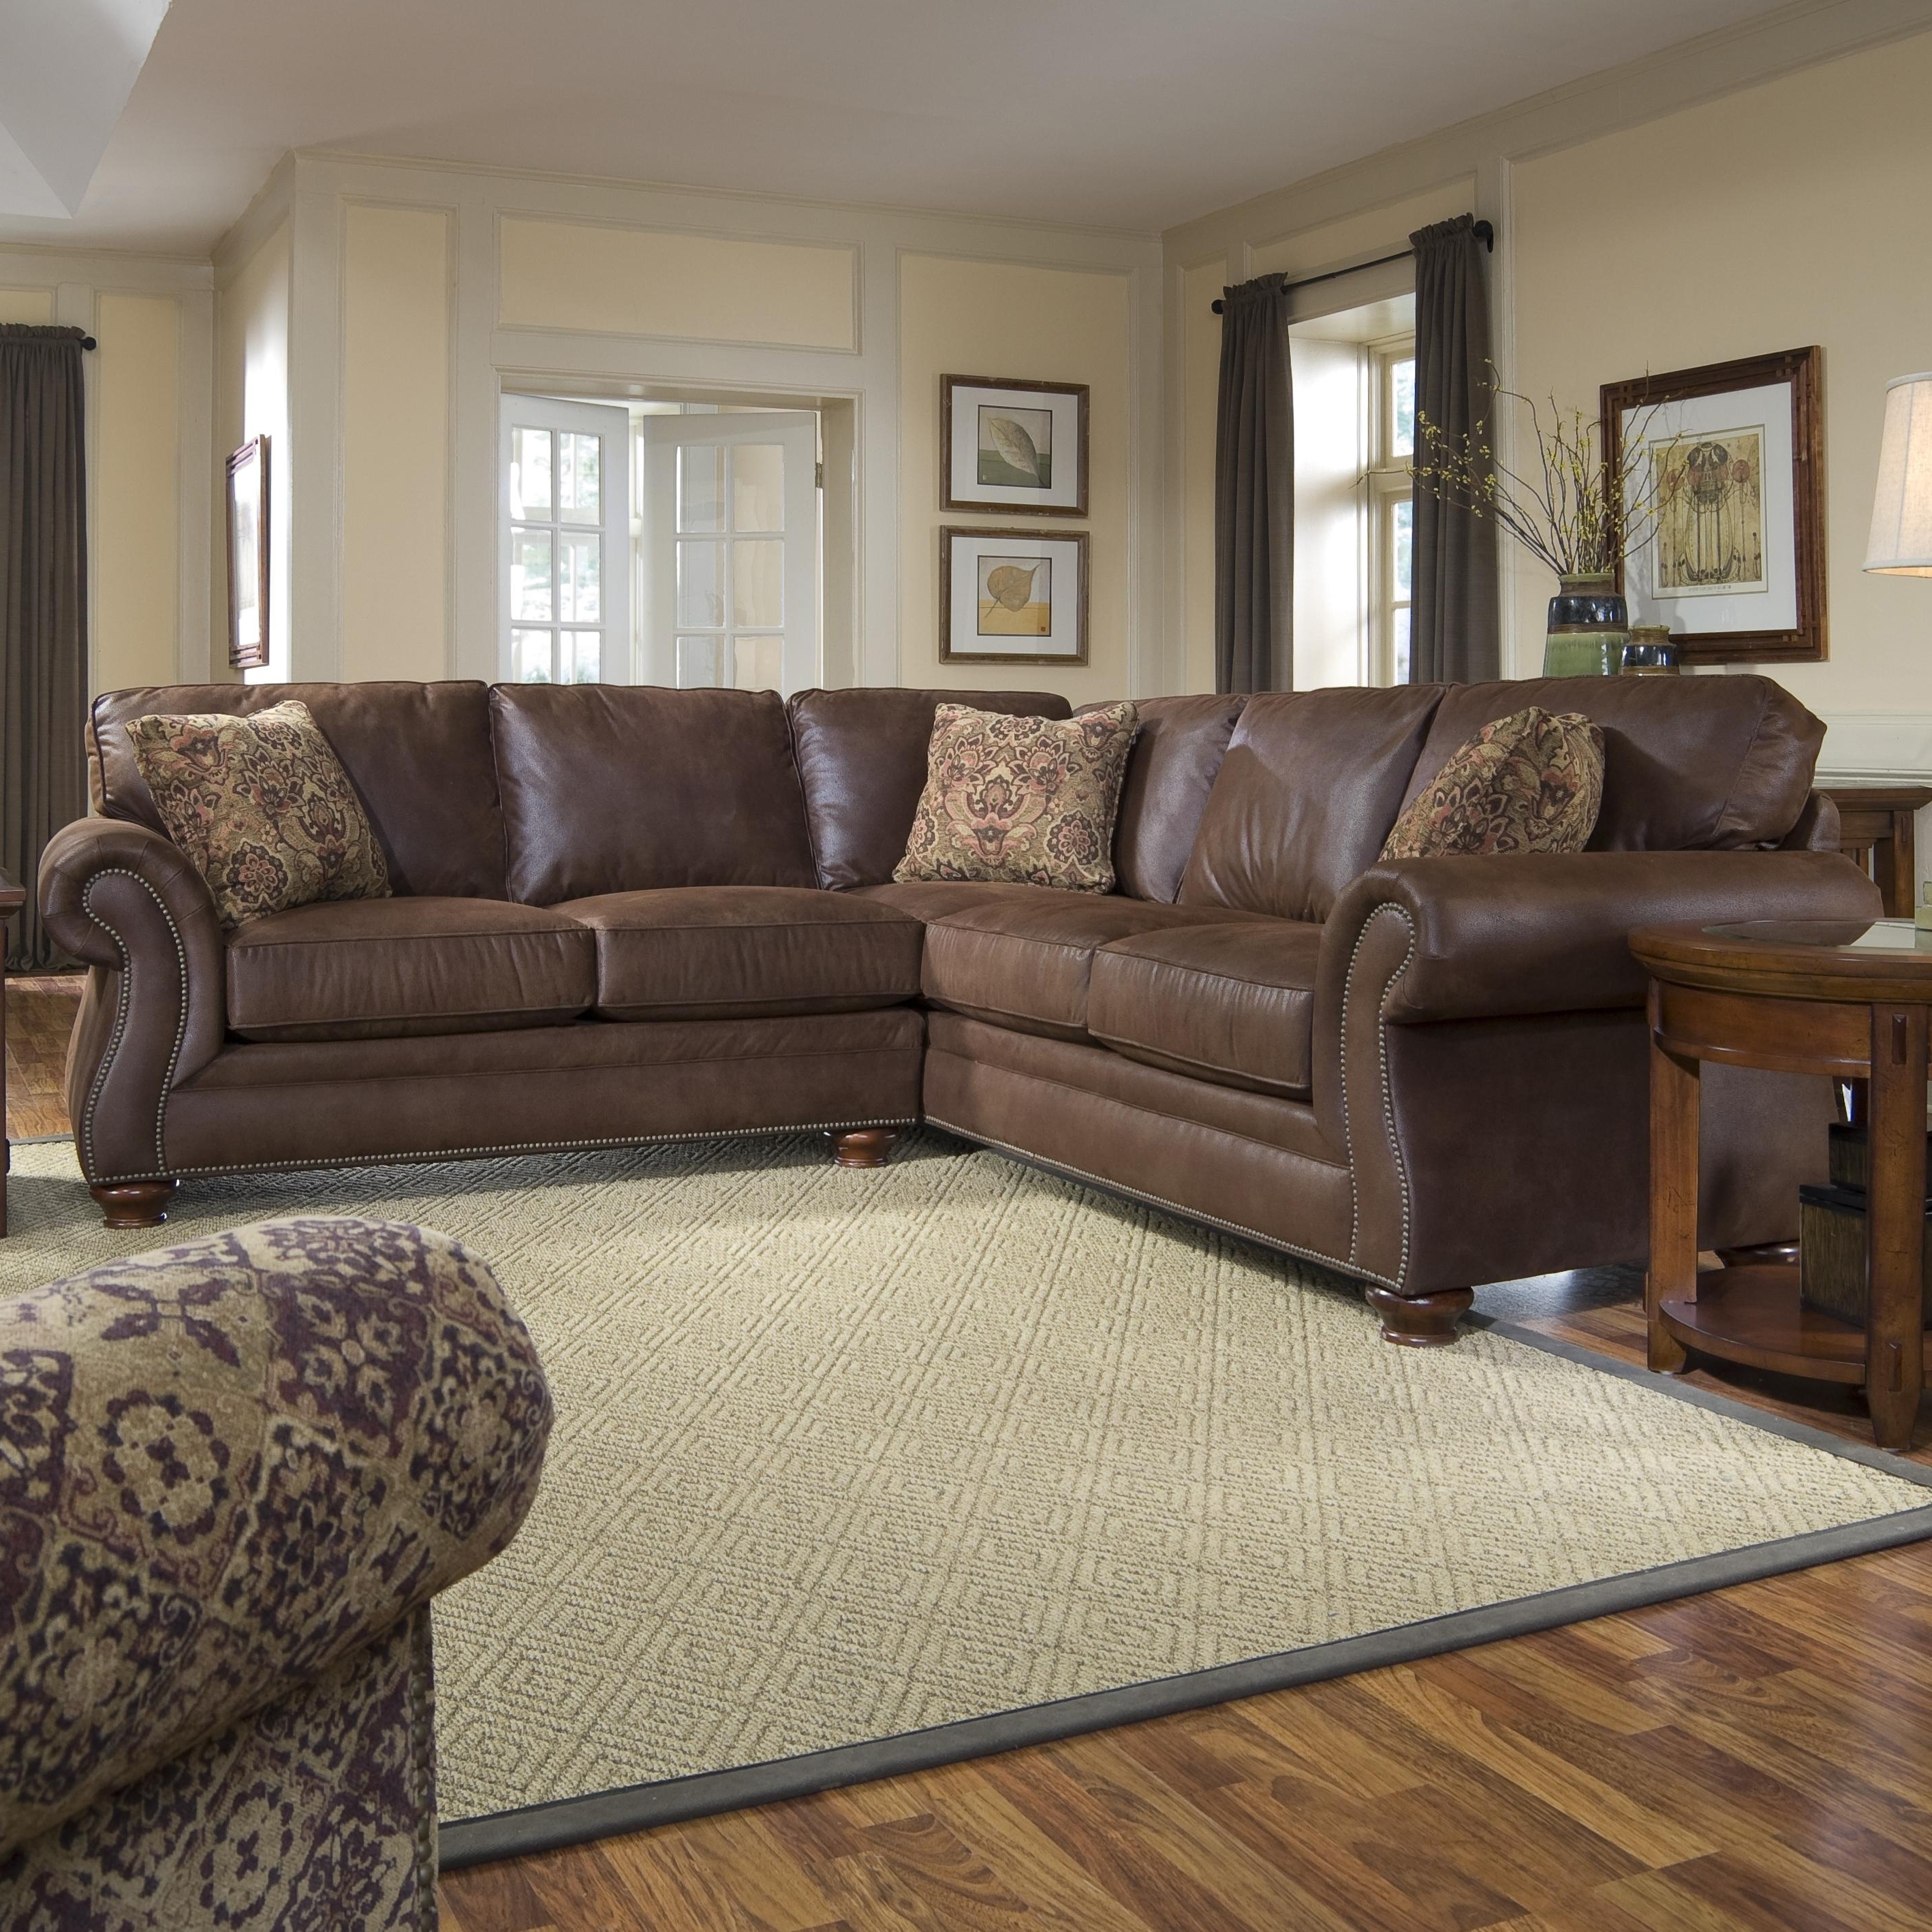 Most Recently Released Broyhill Sectional Sofas Within Broyhill Furniture Laramie 3 Piece Sectional Sofa (View 14 of 15)